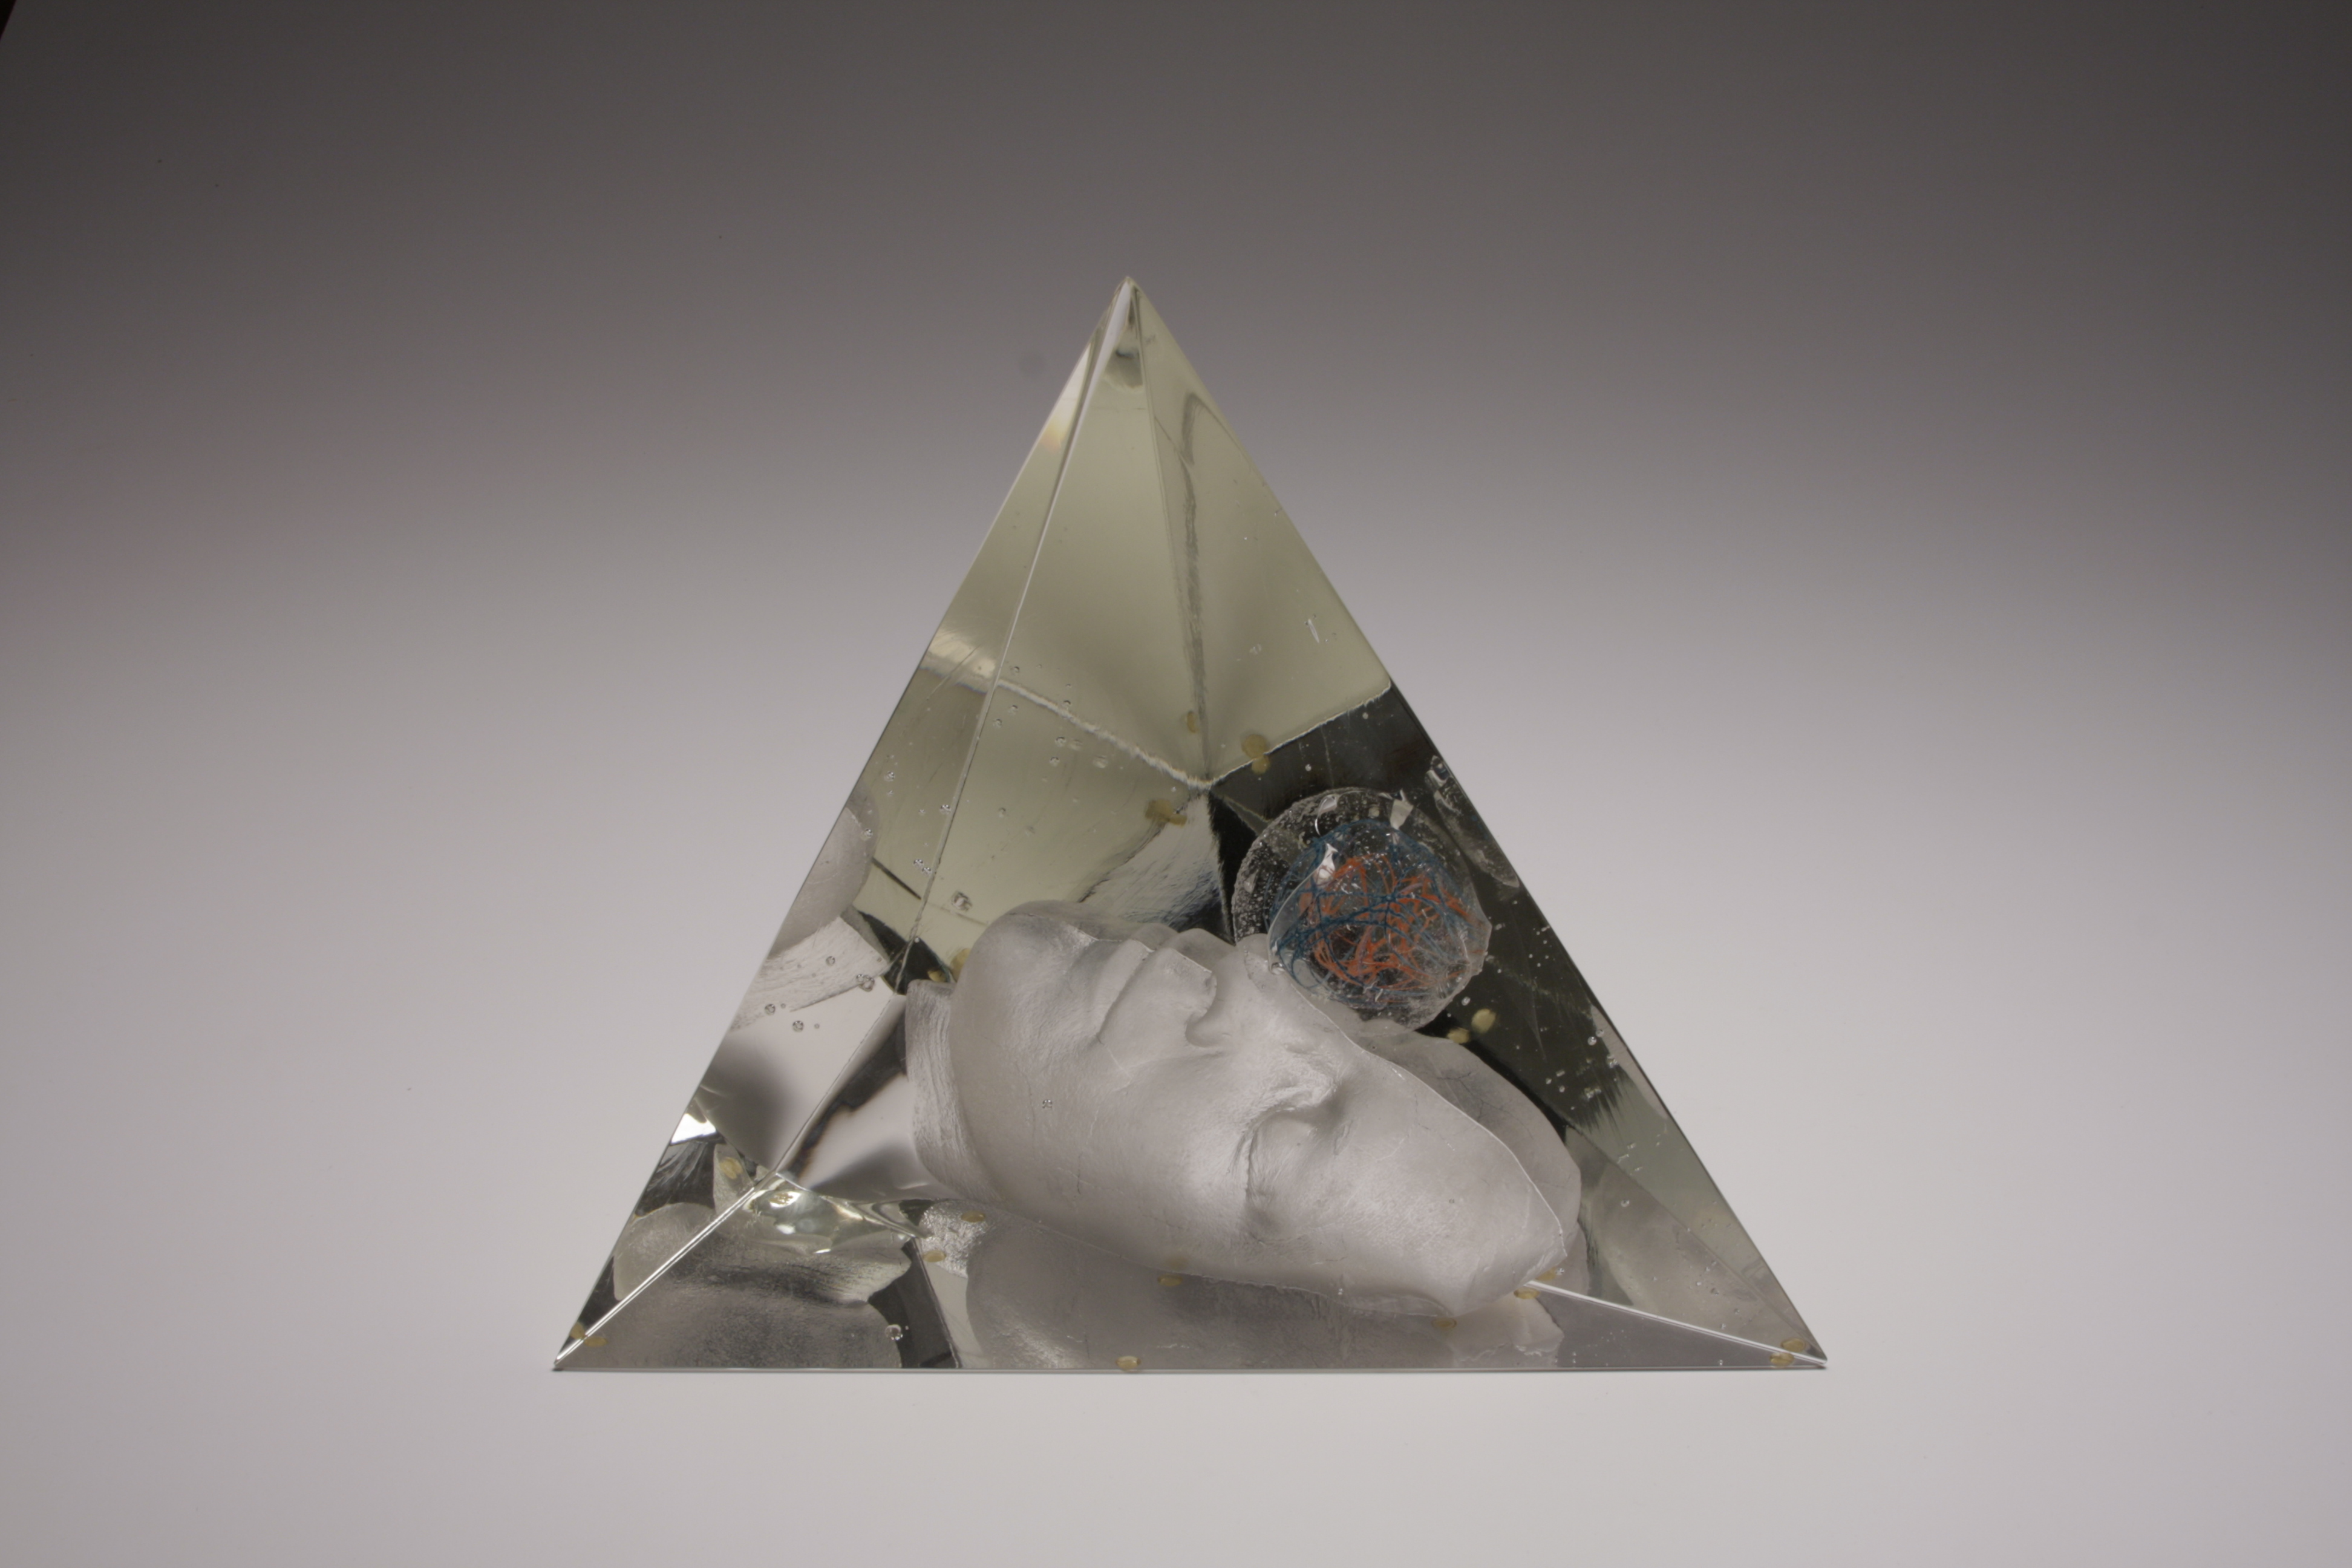 Face looking up with round object floating above it inside a glass pyramid.